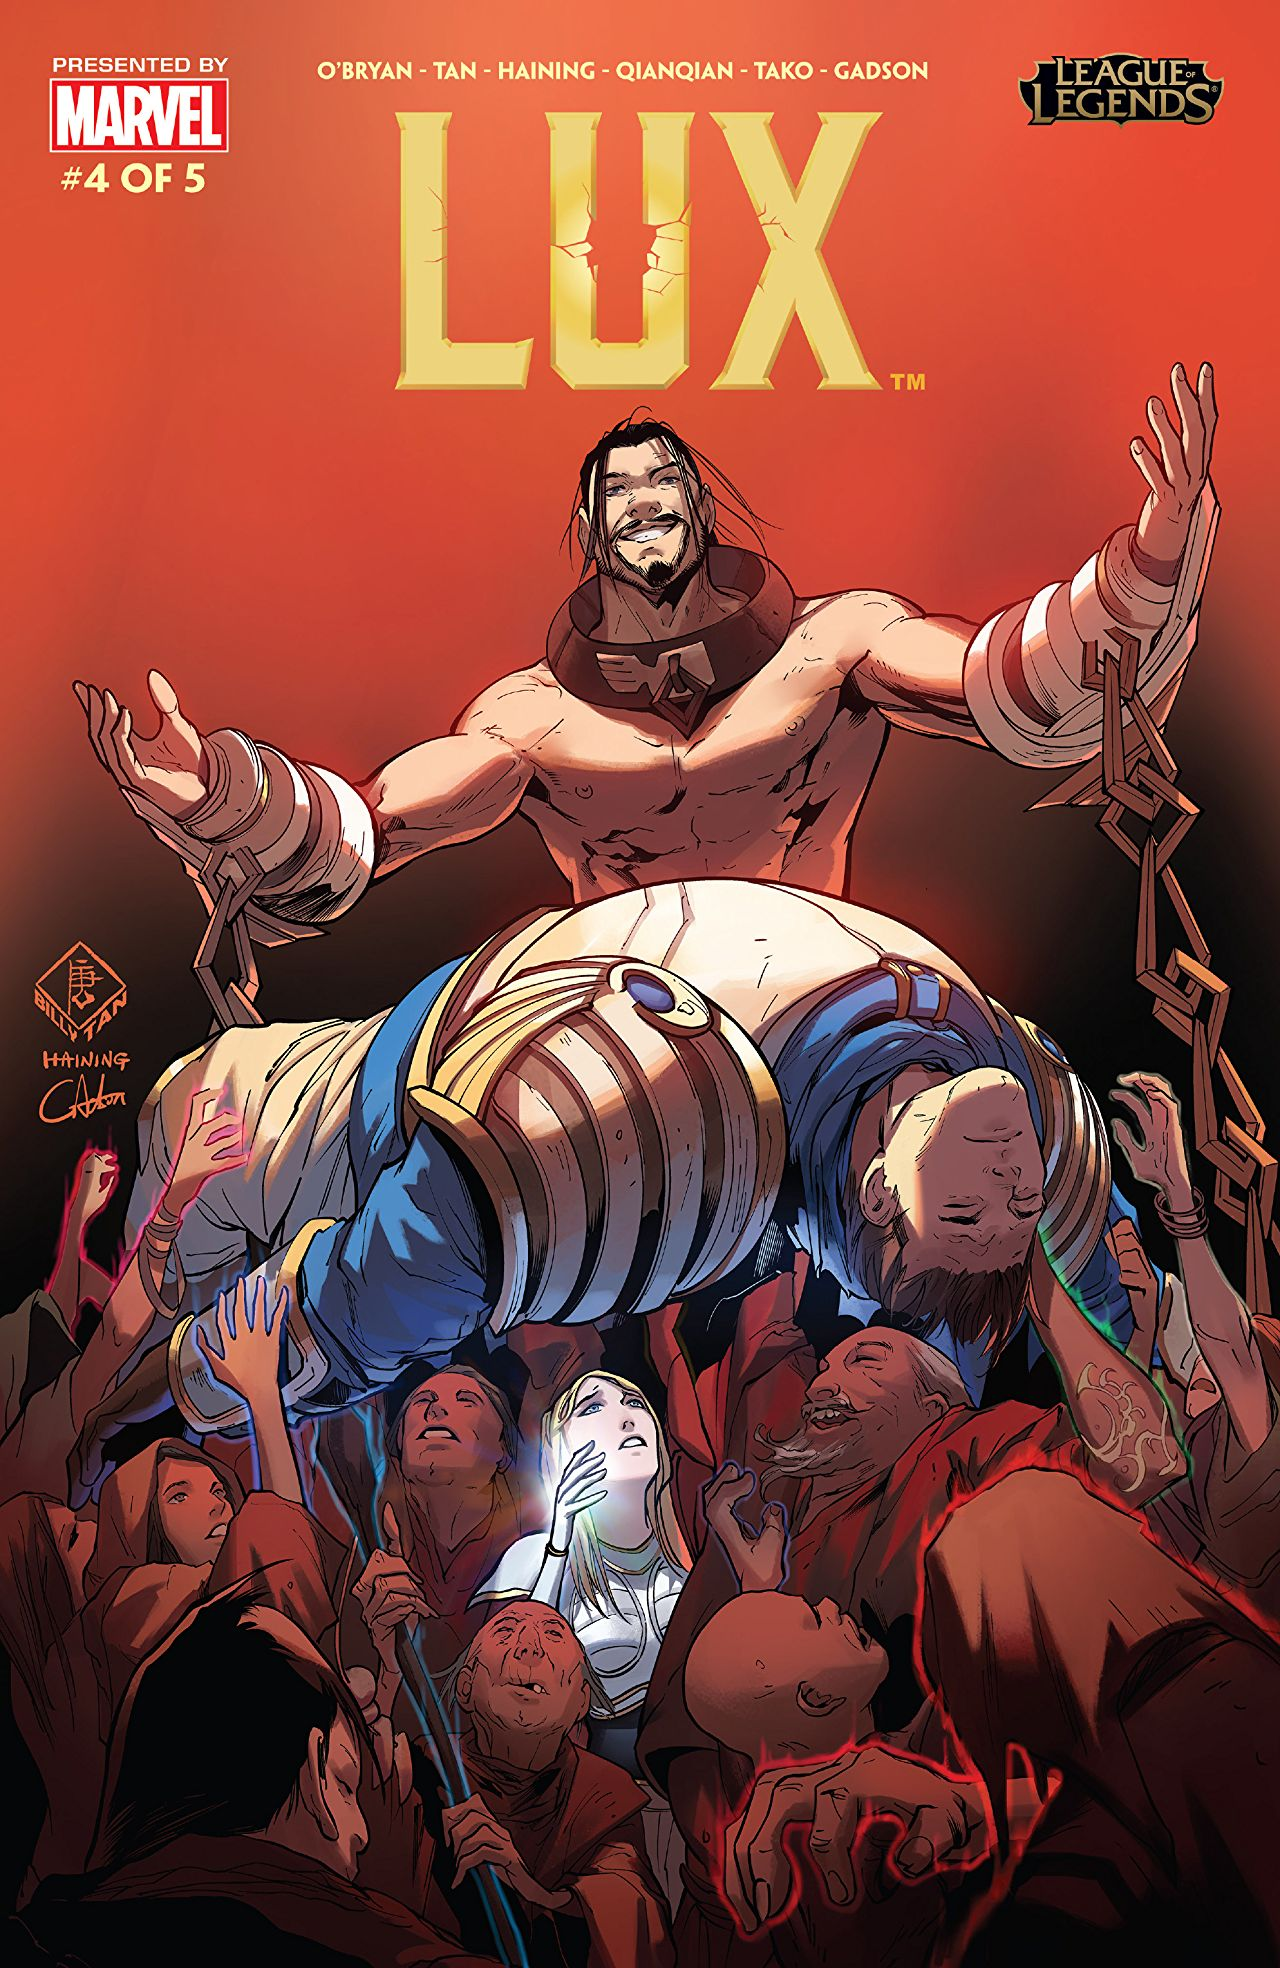 League of Legends: Lux (2019) #4